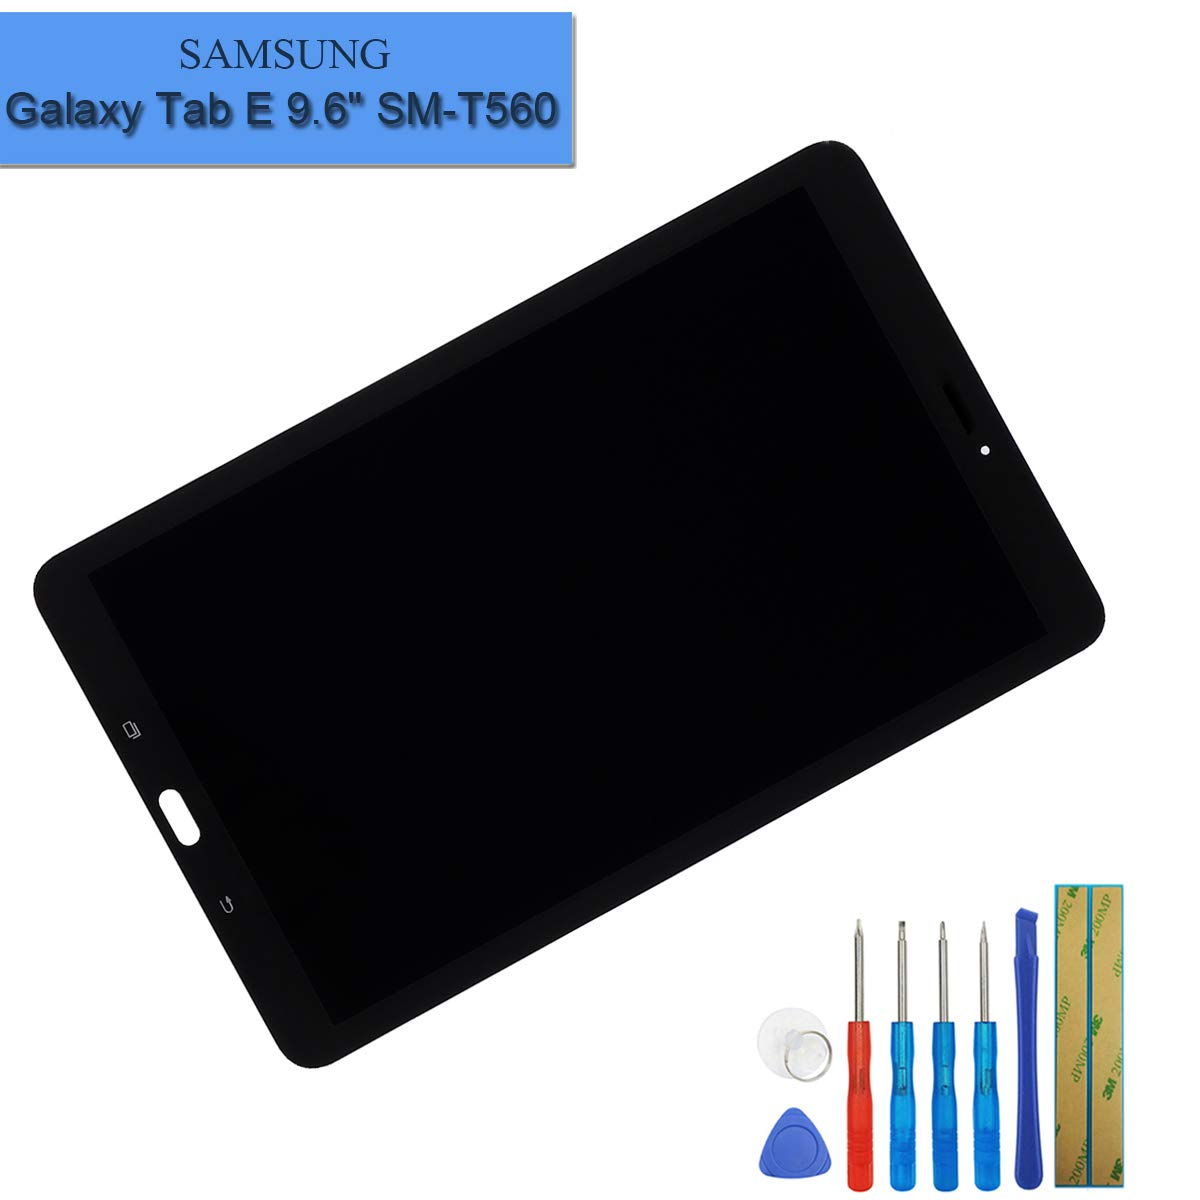 LCD Touch Screen Display Assembly Digitizer Compatible with Samsung Galaxy Tab E 9.6 SM-T560 T561 T567 LCD Display+ Tools